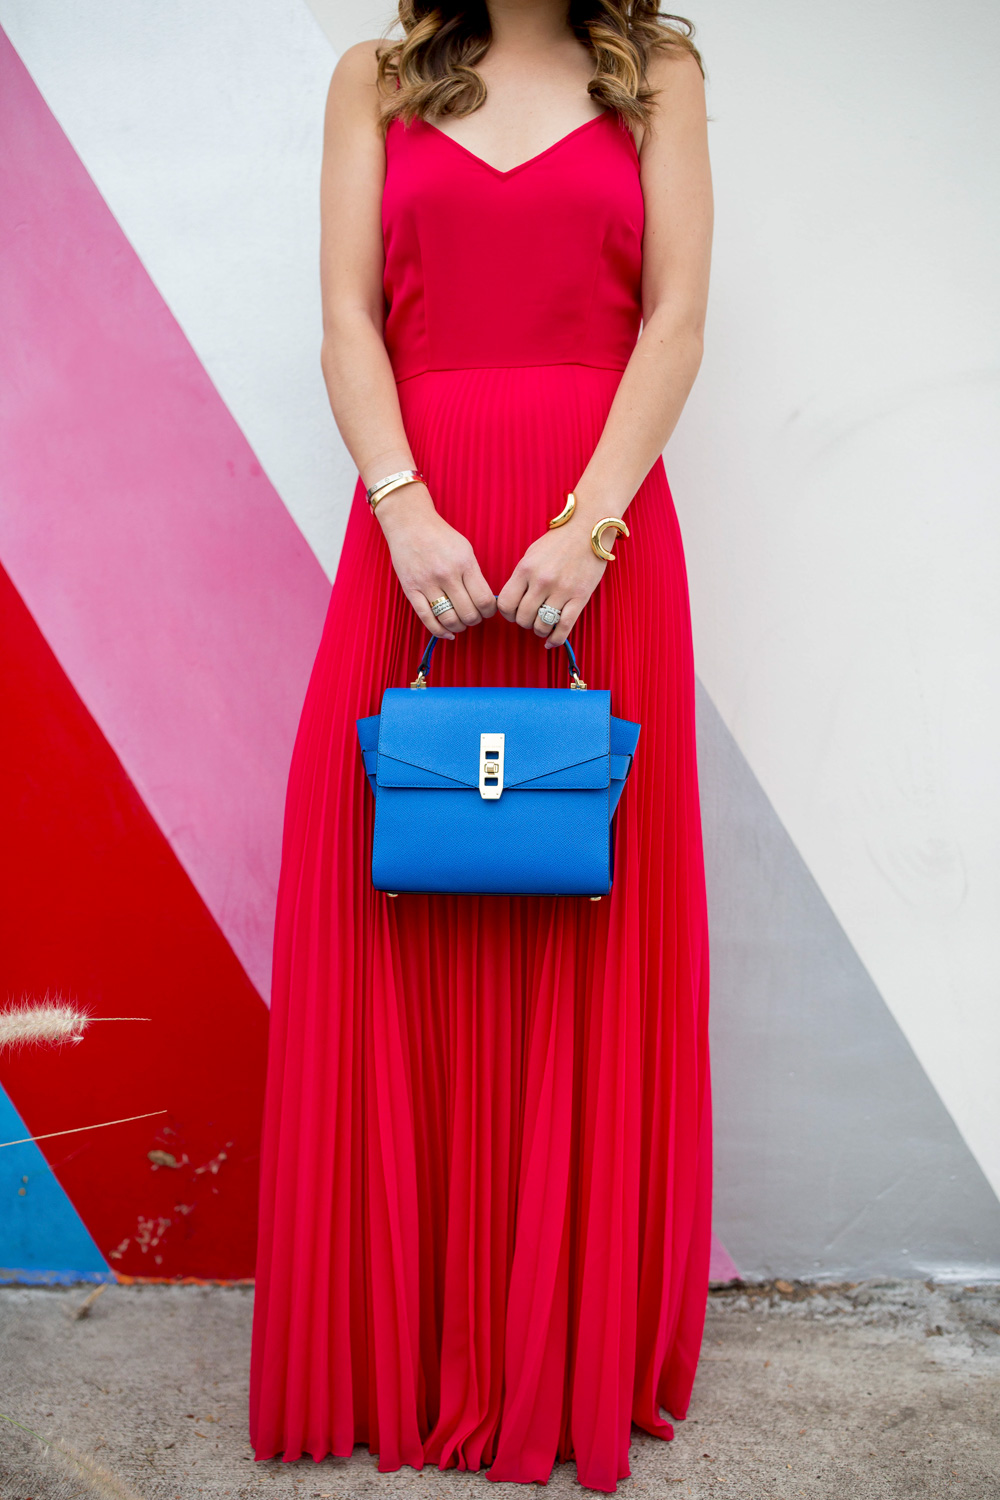 Jennifer Lake Style Charade in an ASOS pink maxi dress, blue Henri Bendel Mini Uptown satchel, and Giles and Brother Cortina cuff at a striped wall in Los Angeles